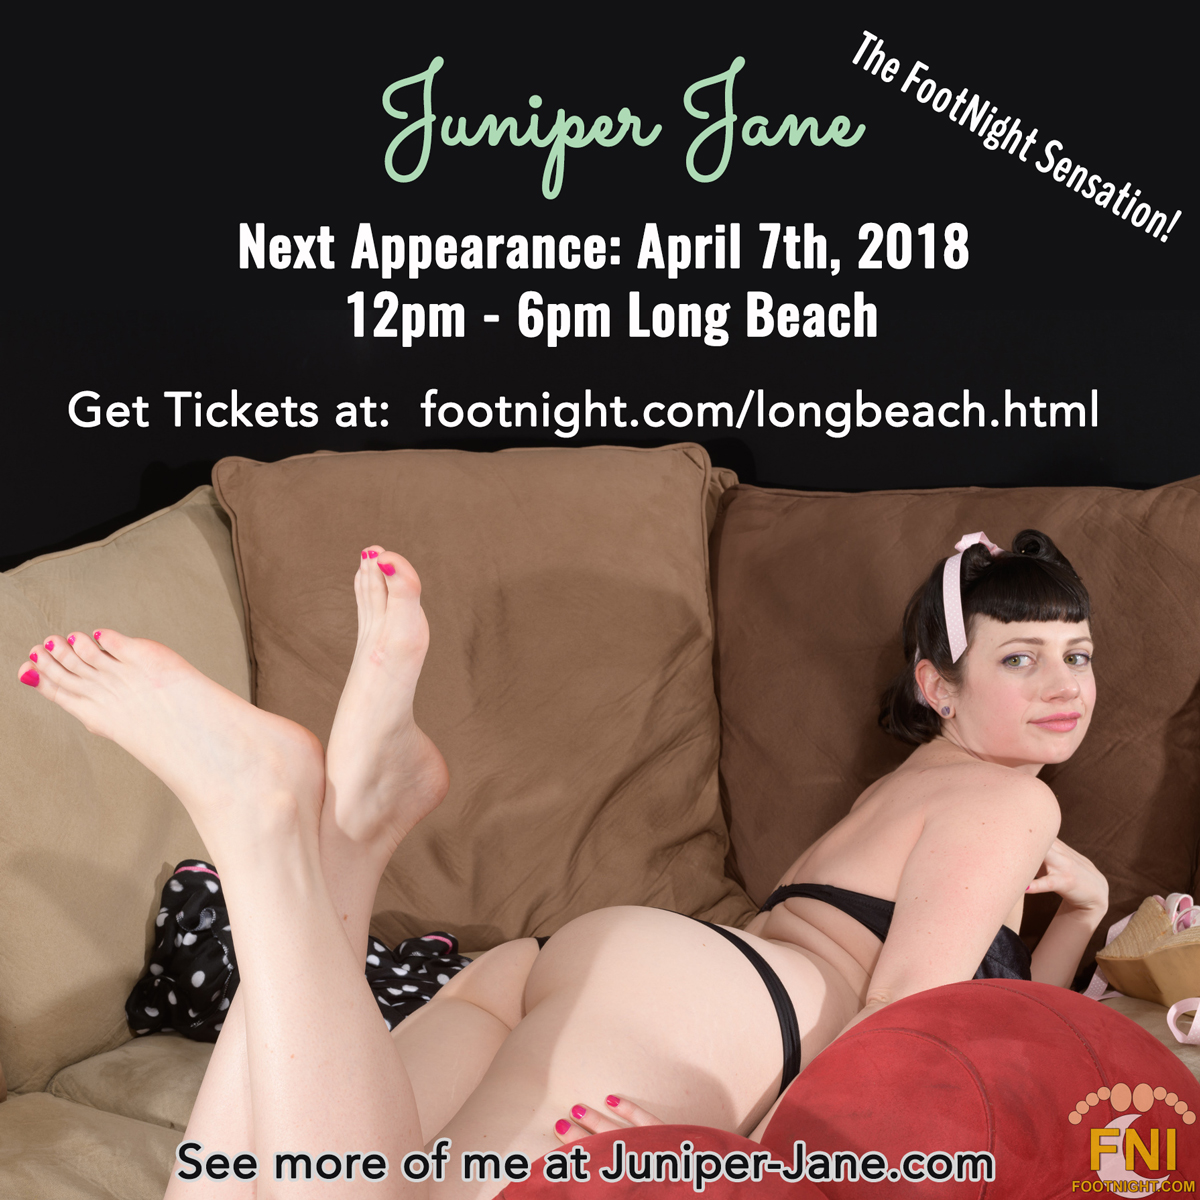 Juniper Jane at Footnight Long Beach, April 7th